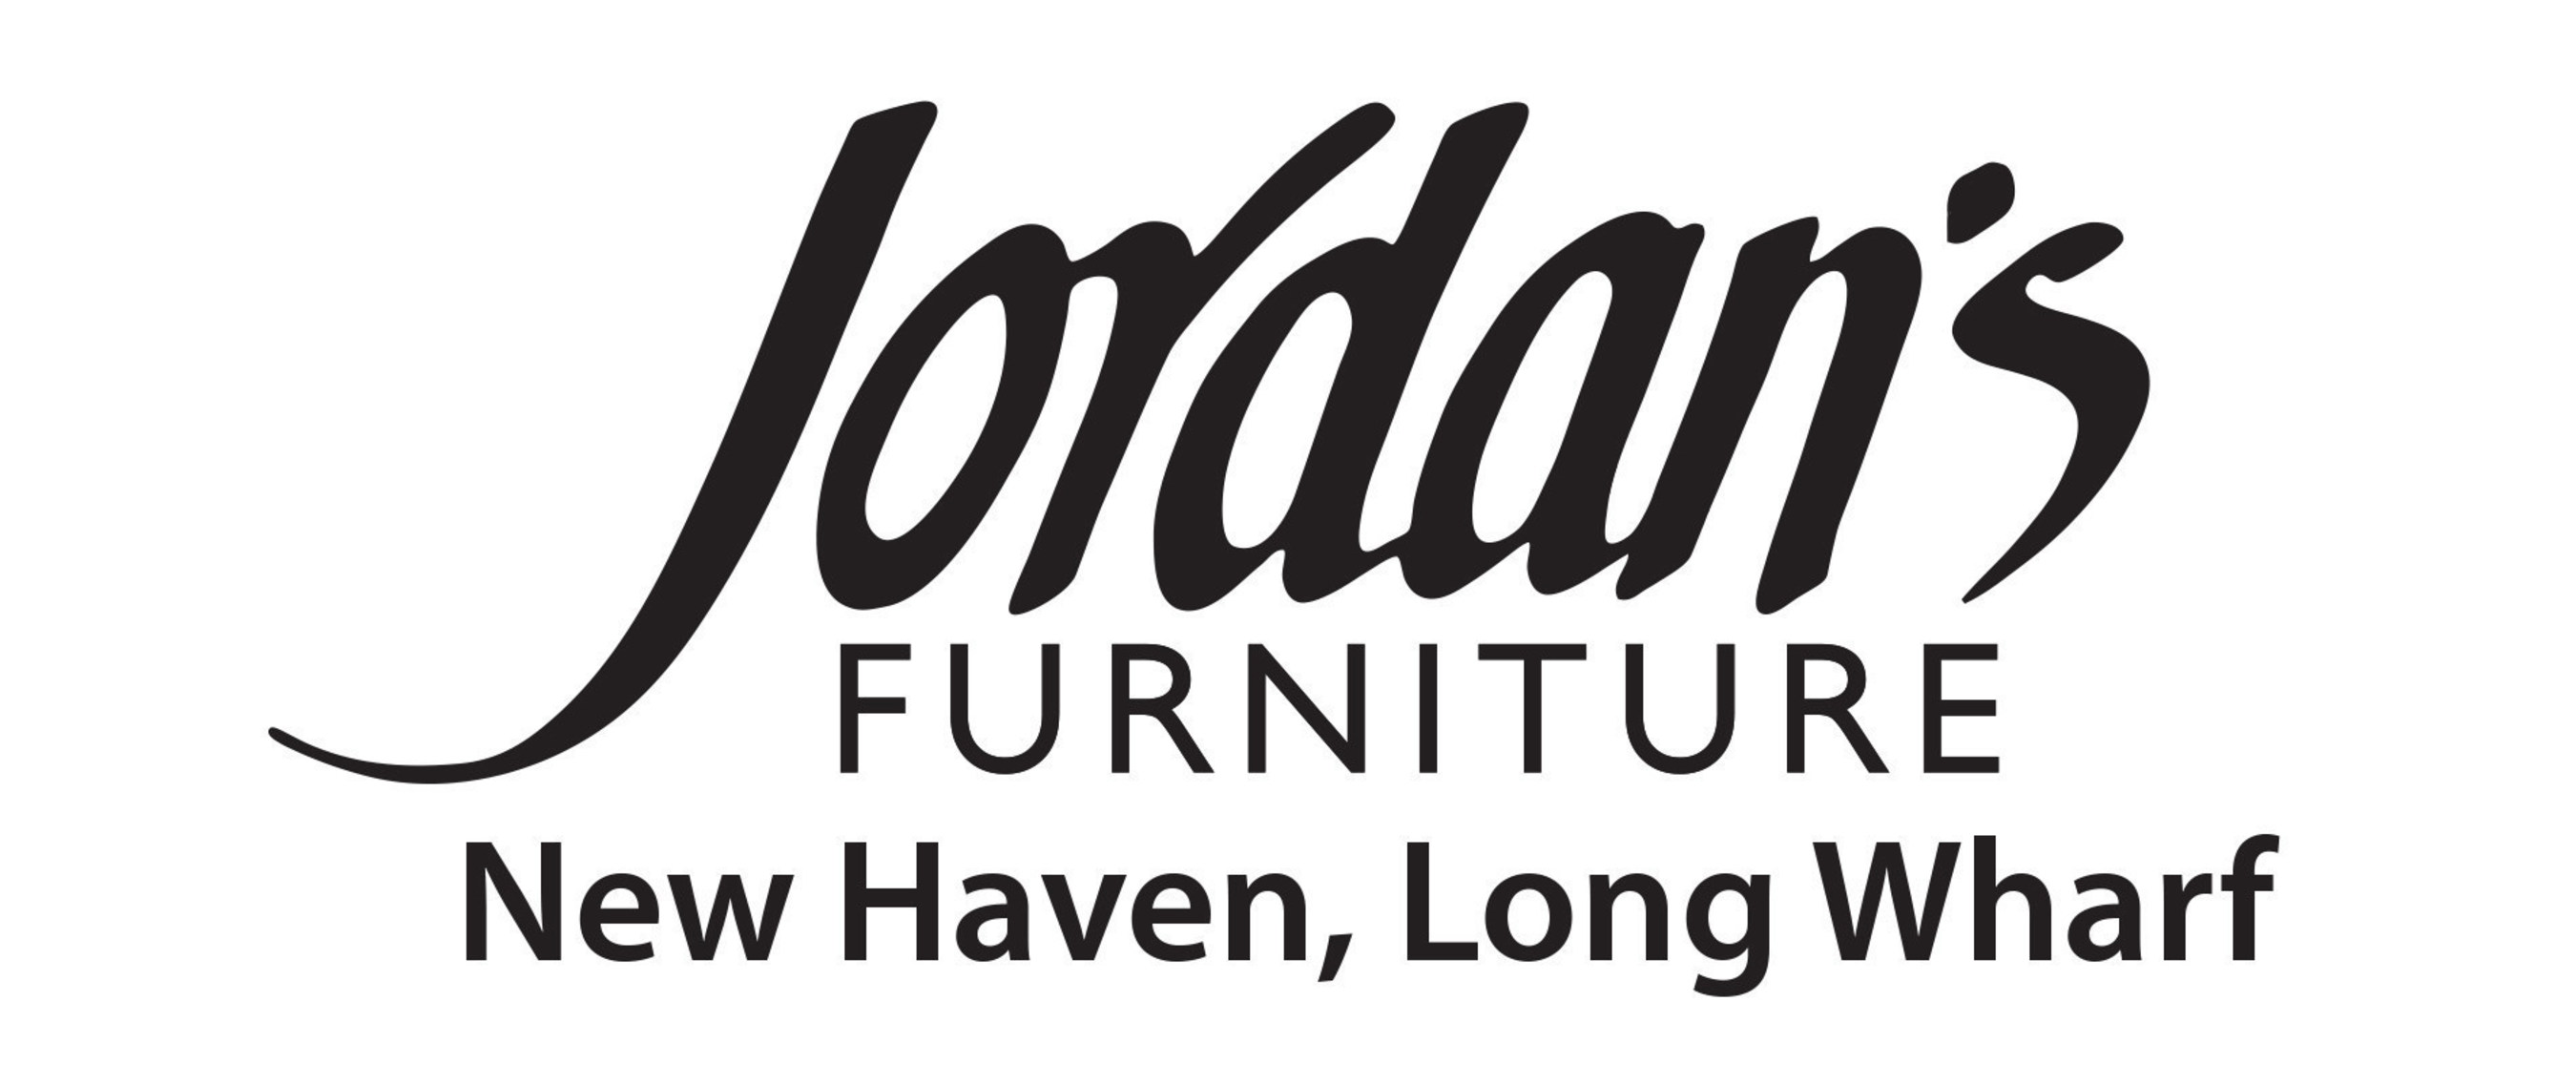 Jordan S Furniture Opens Its Sixth Location In New Haven Ct